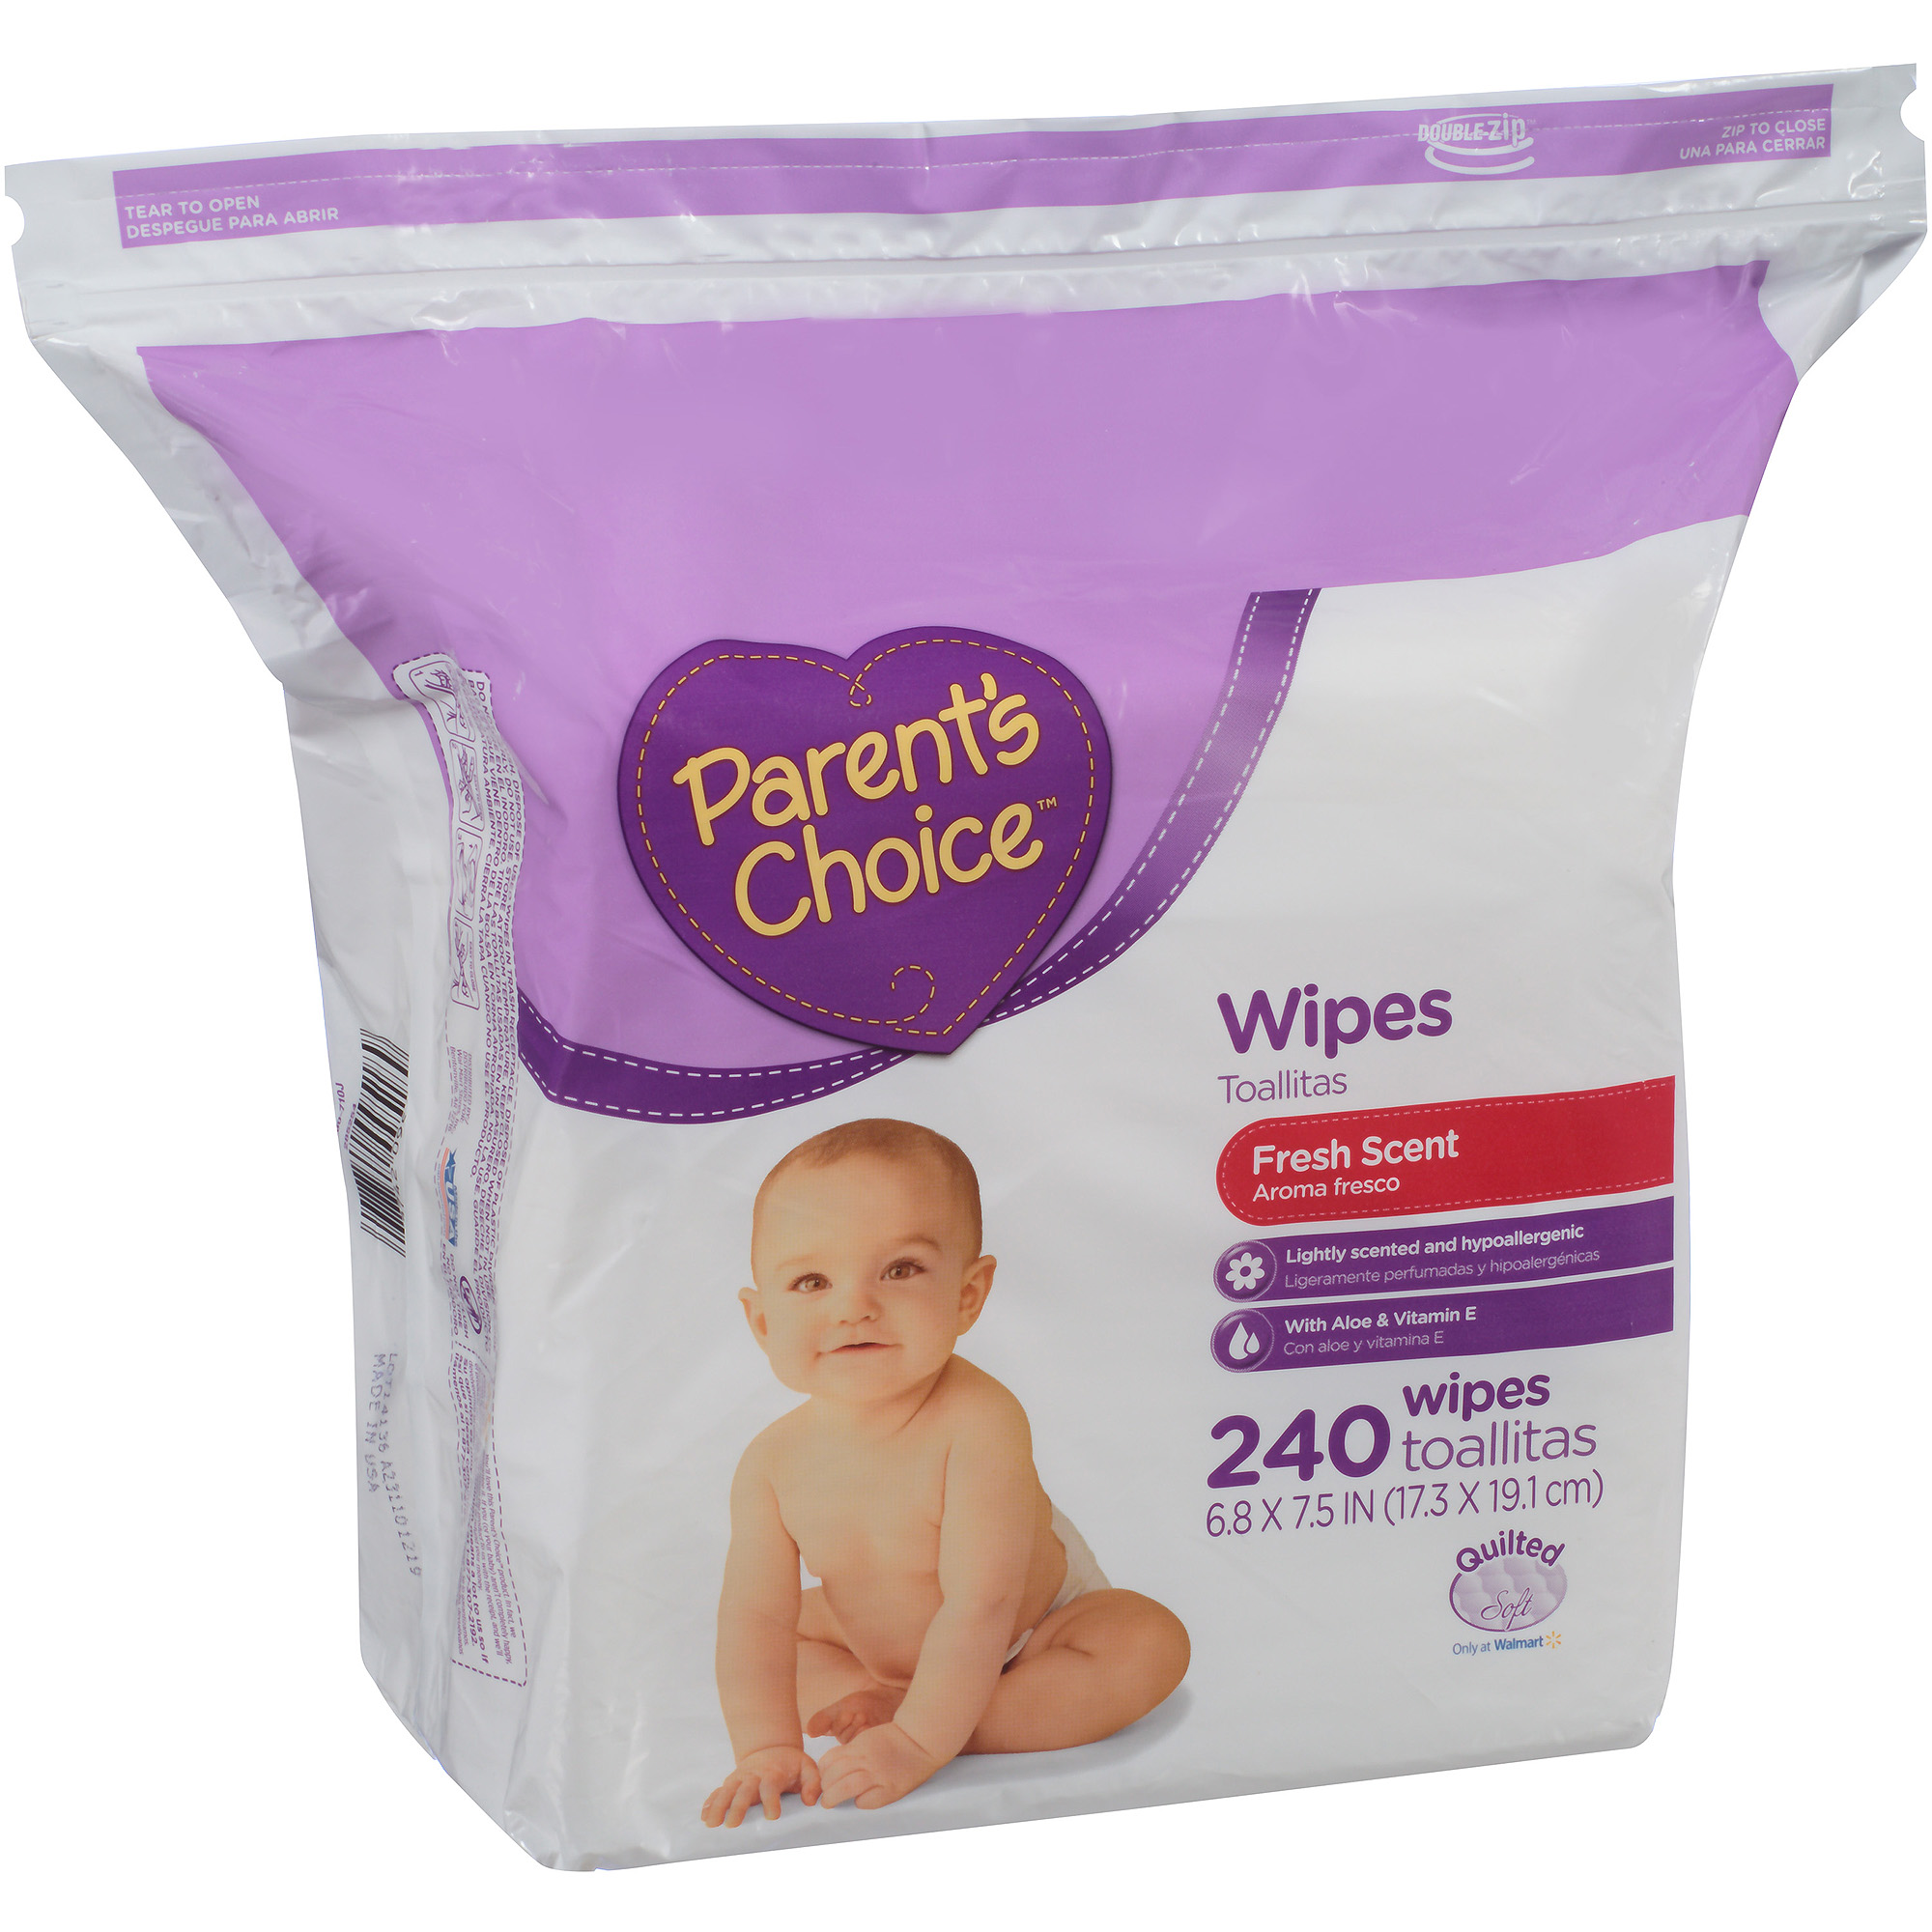 Parent's Choice Fresh Scent Baby Wipes, 240 sheets Resealable Zipper Bag Refill